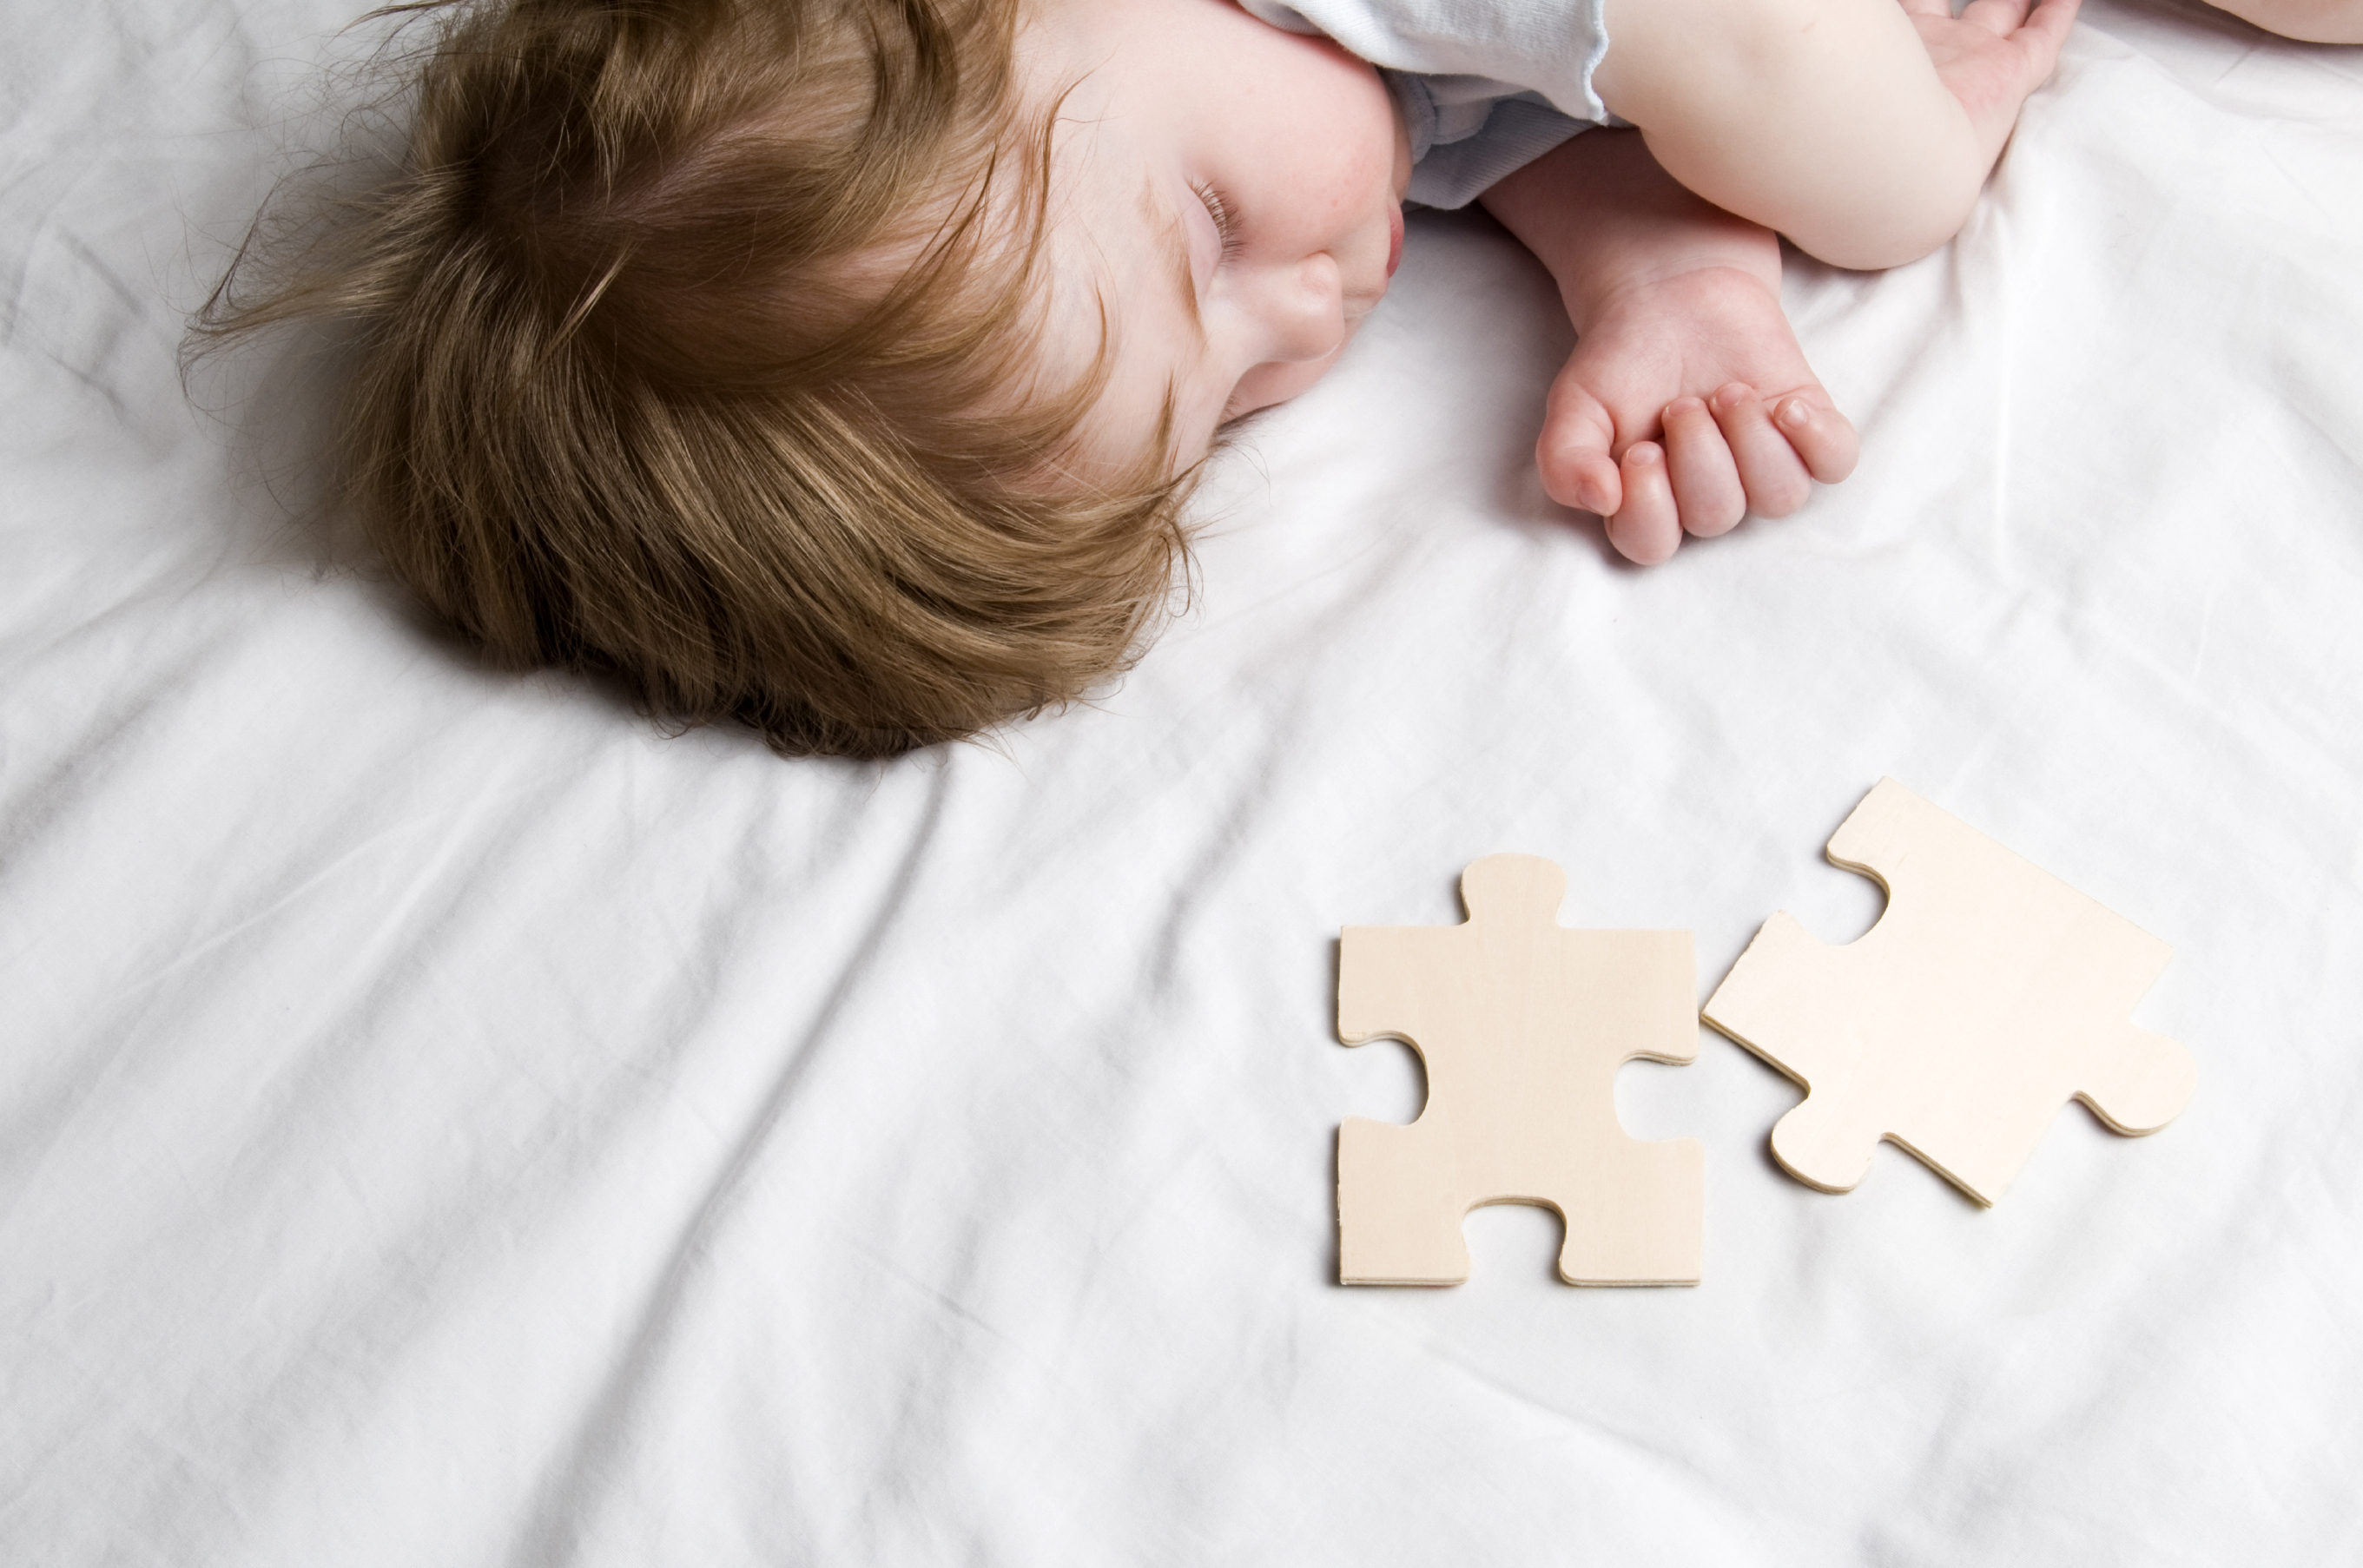 Prevalence Of Autism In Us Remains >> U S Autism Rates Appear To Be Stabilizing New Study Suggests Cbs